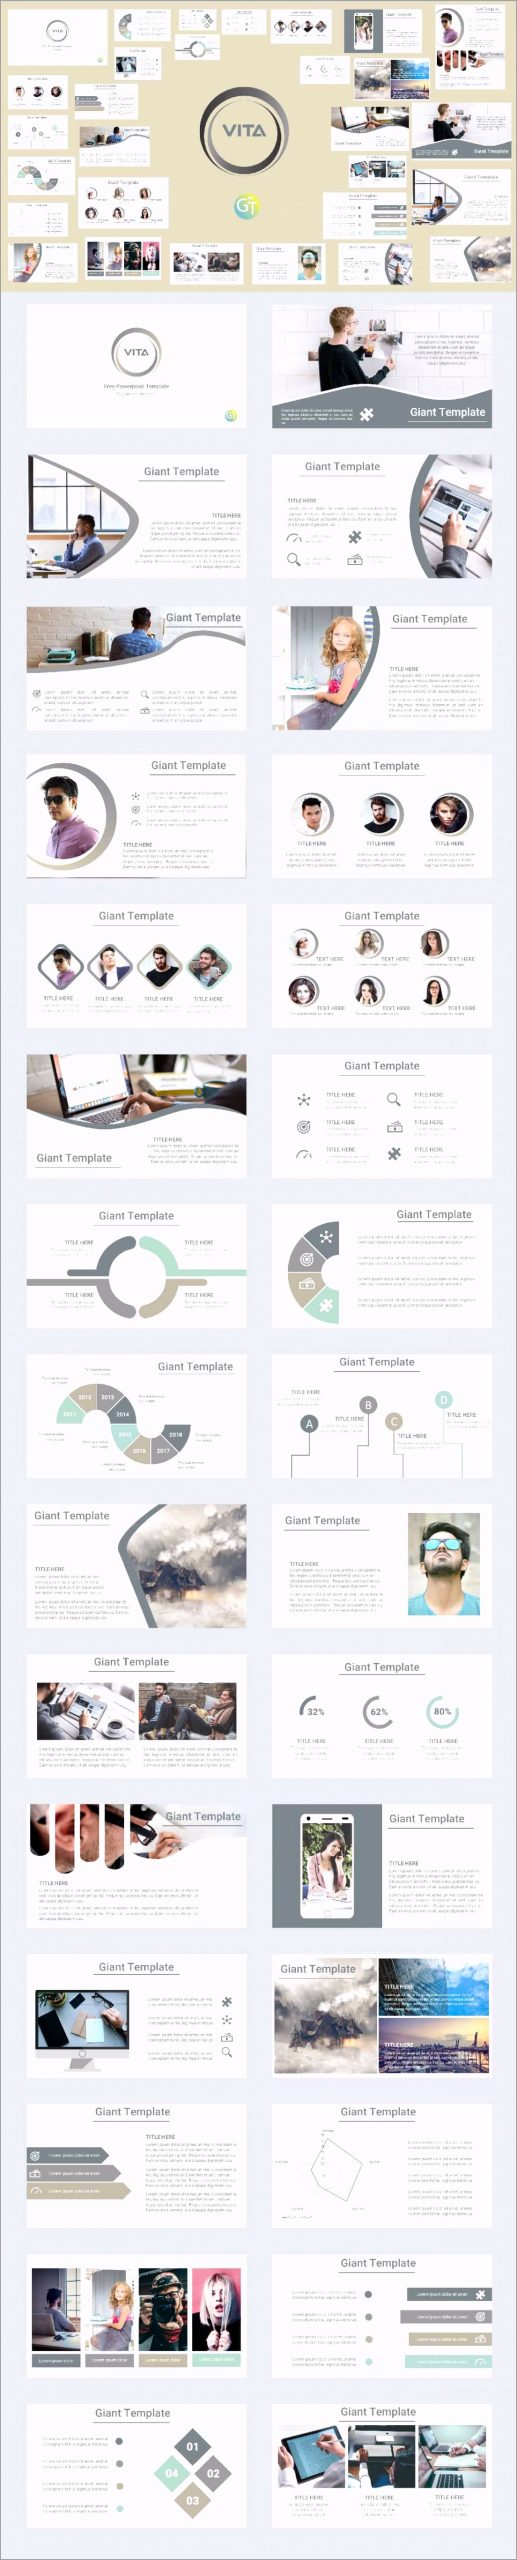 business powerpoint templates 2018 free todkm